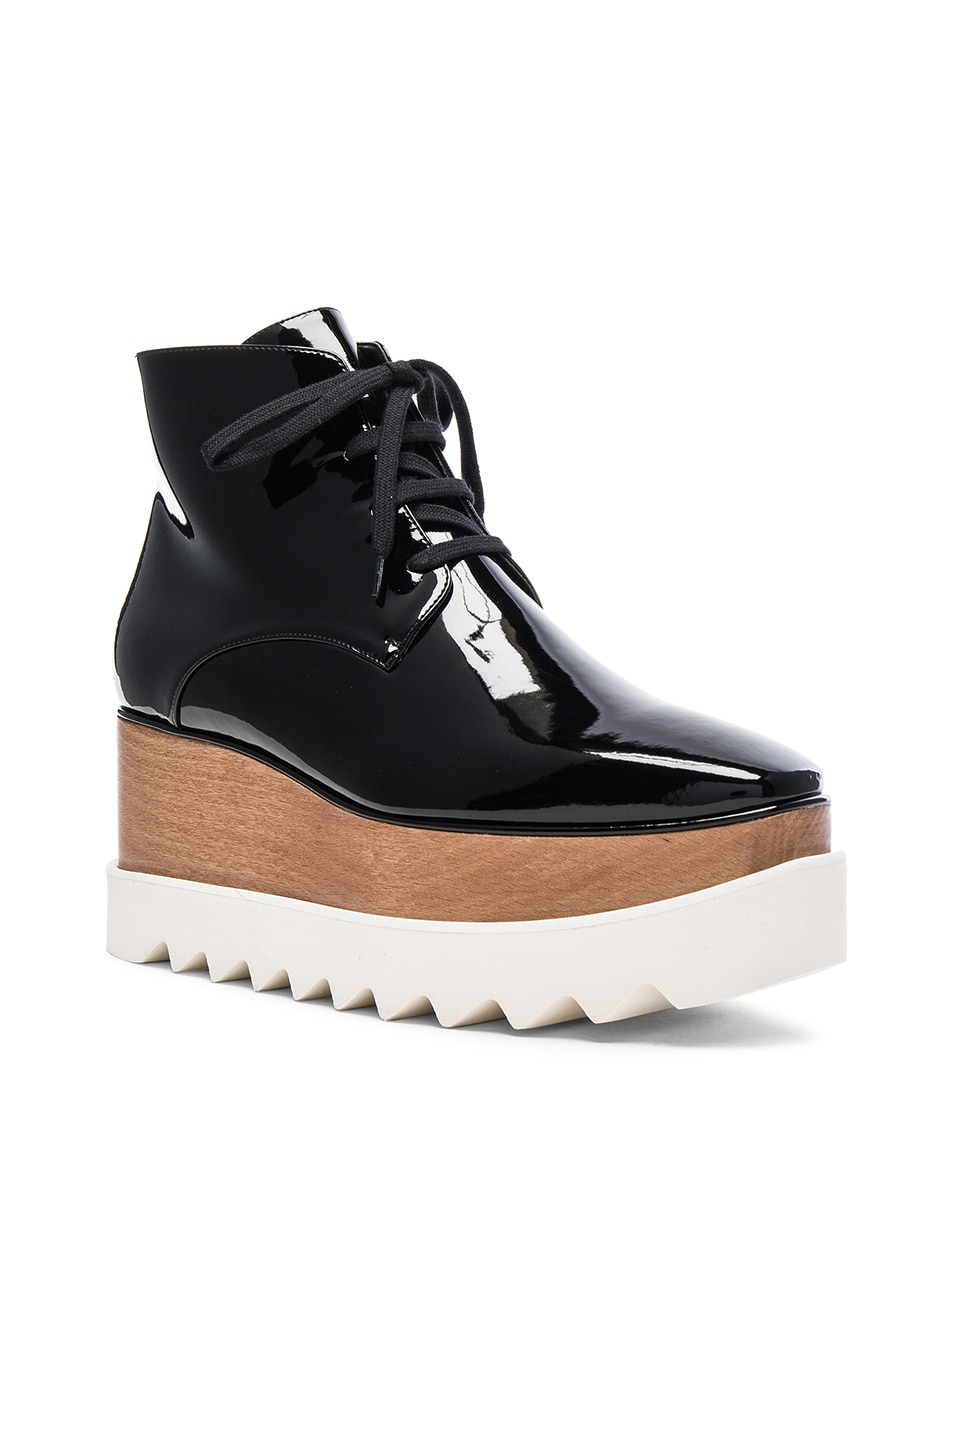 Image 2 of Stella McCartney Elyse Platform Boots in Black